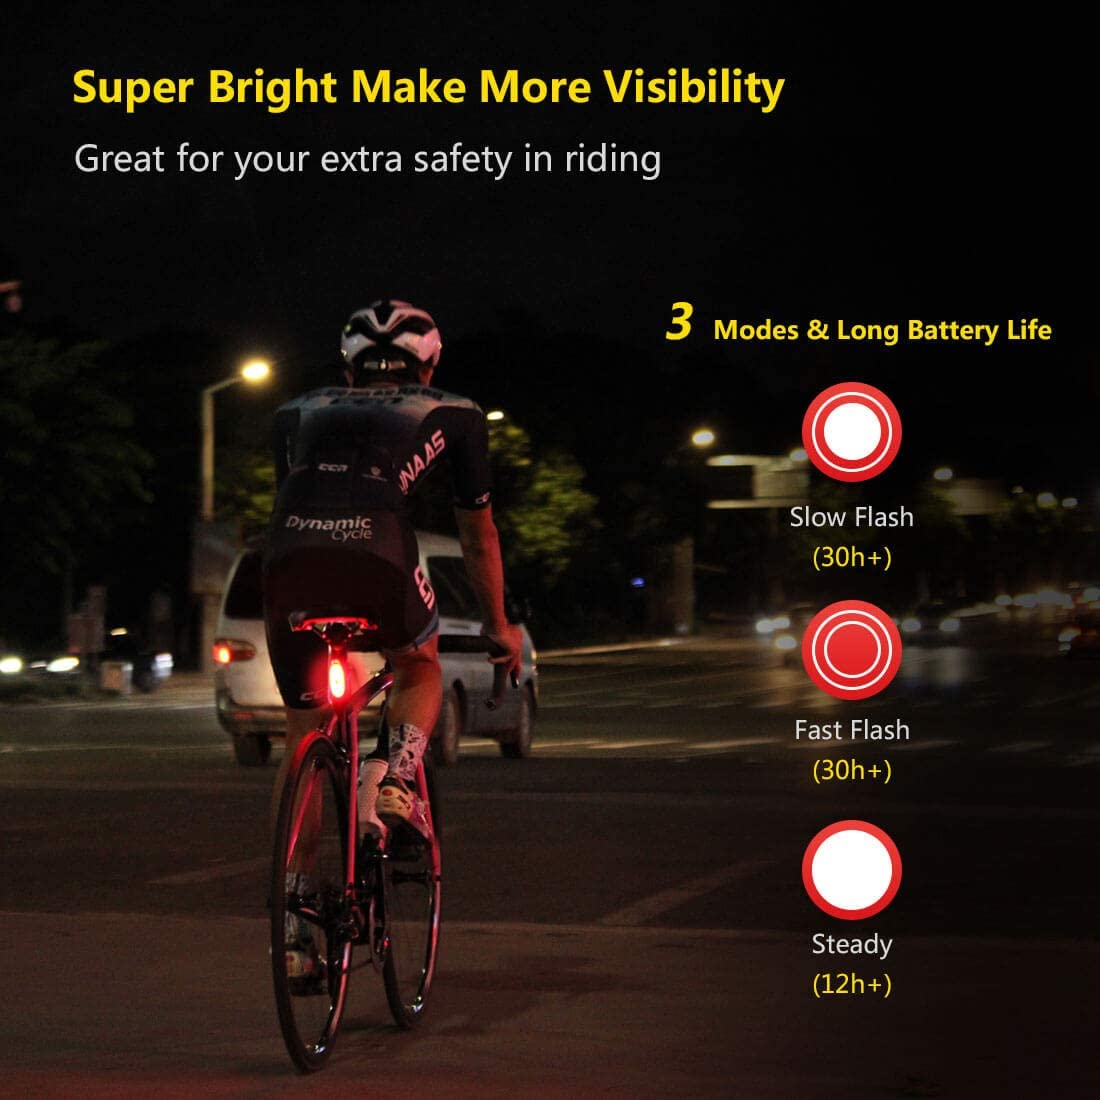 5 Led Safety Flasher Bike Bicycle Light Blinker Rear Tail Night Road Lamp Bright